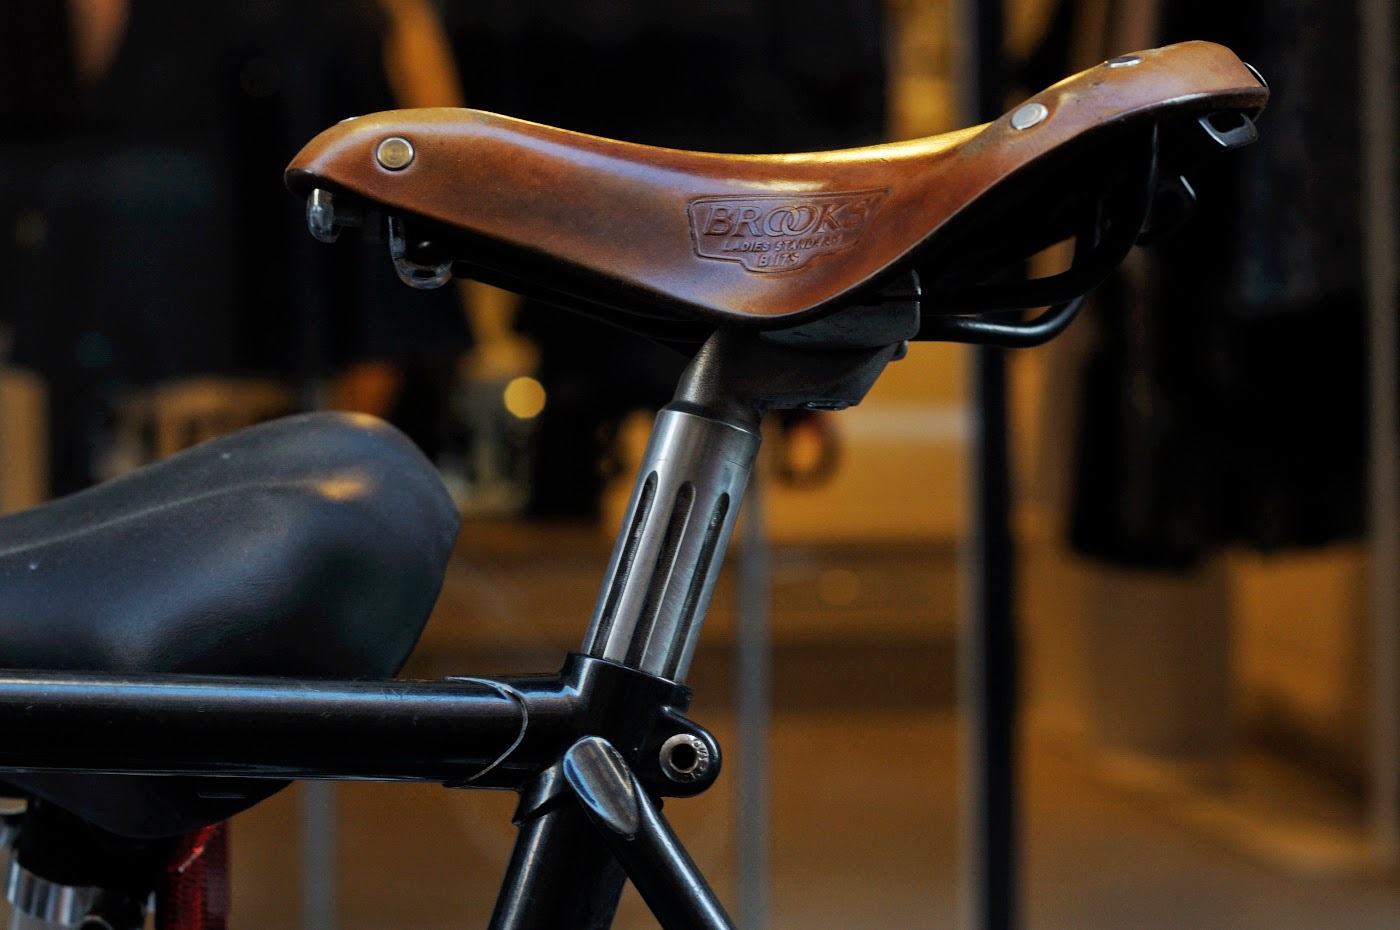 Bespoke, customisation, conversion, frame, Melbourne, Australia, tim macauley, the biketorialist, single speed, custom, flinders lane, bike, bicycle,  brooks, saddle, seat tube, leather